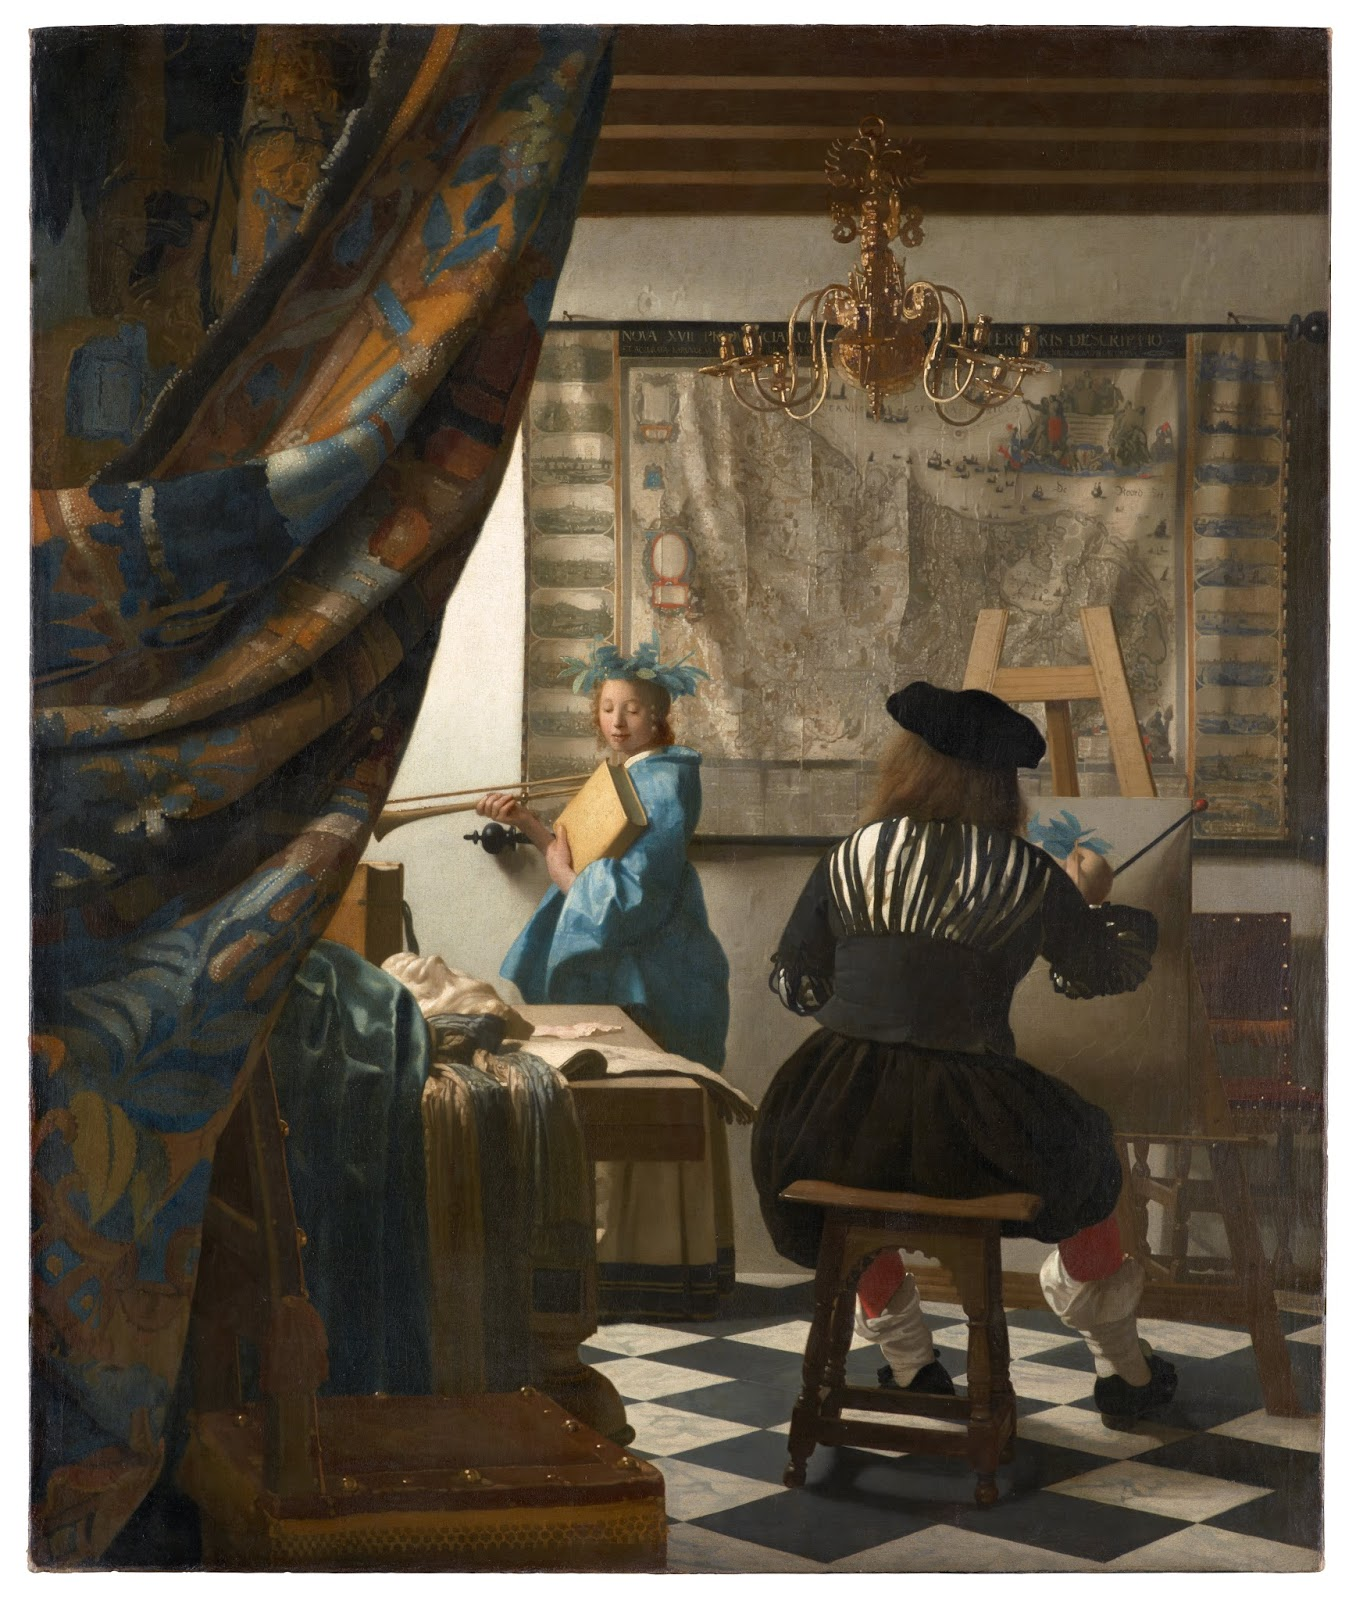 Artist of the Month: Vermeer